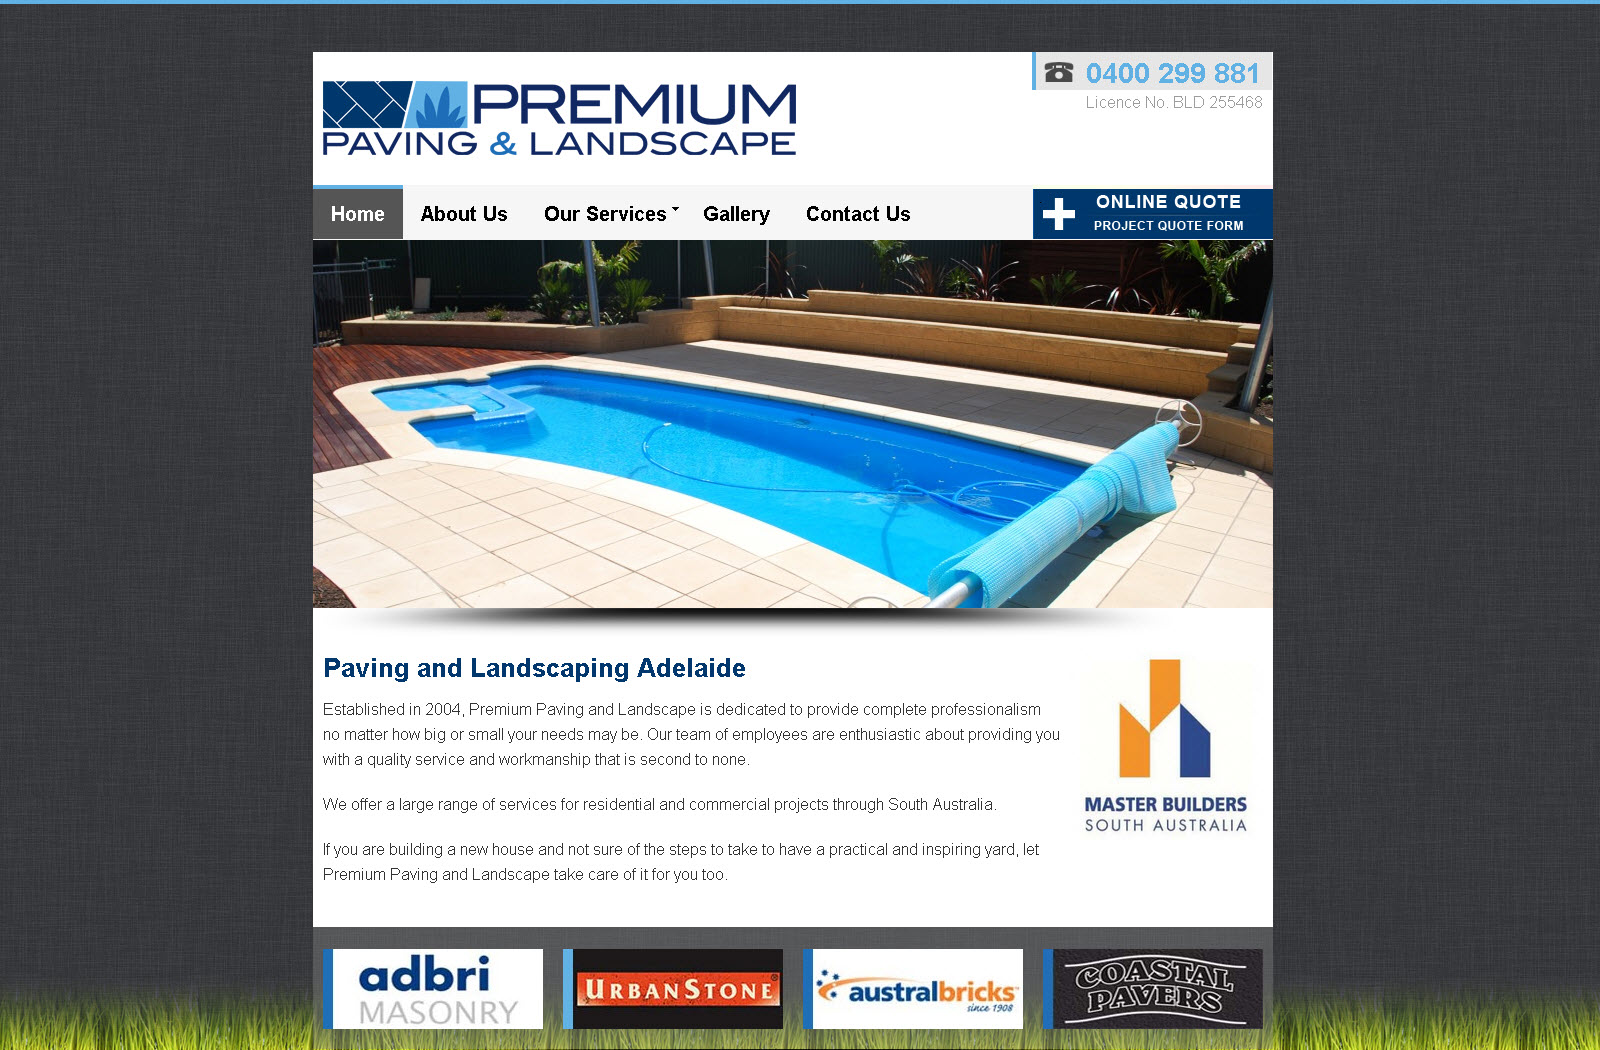 Premium Paving and Landscape